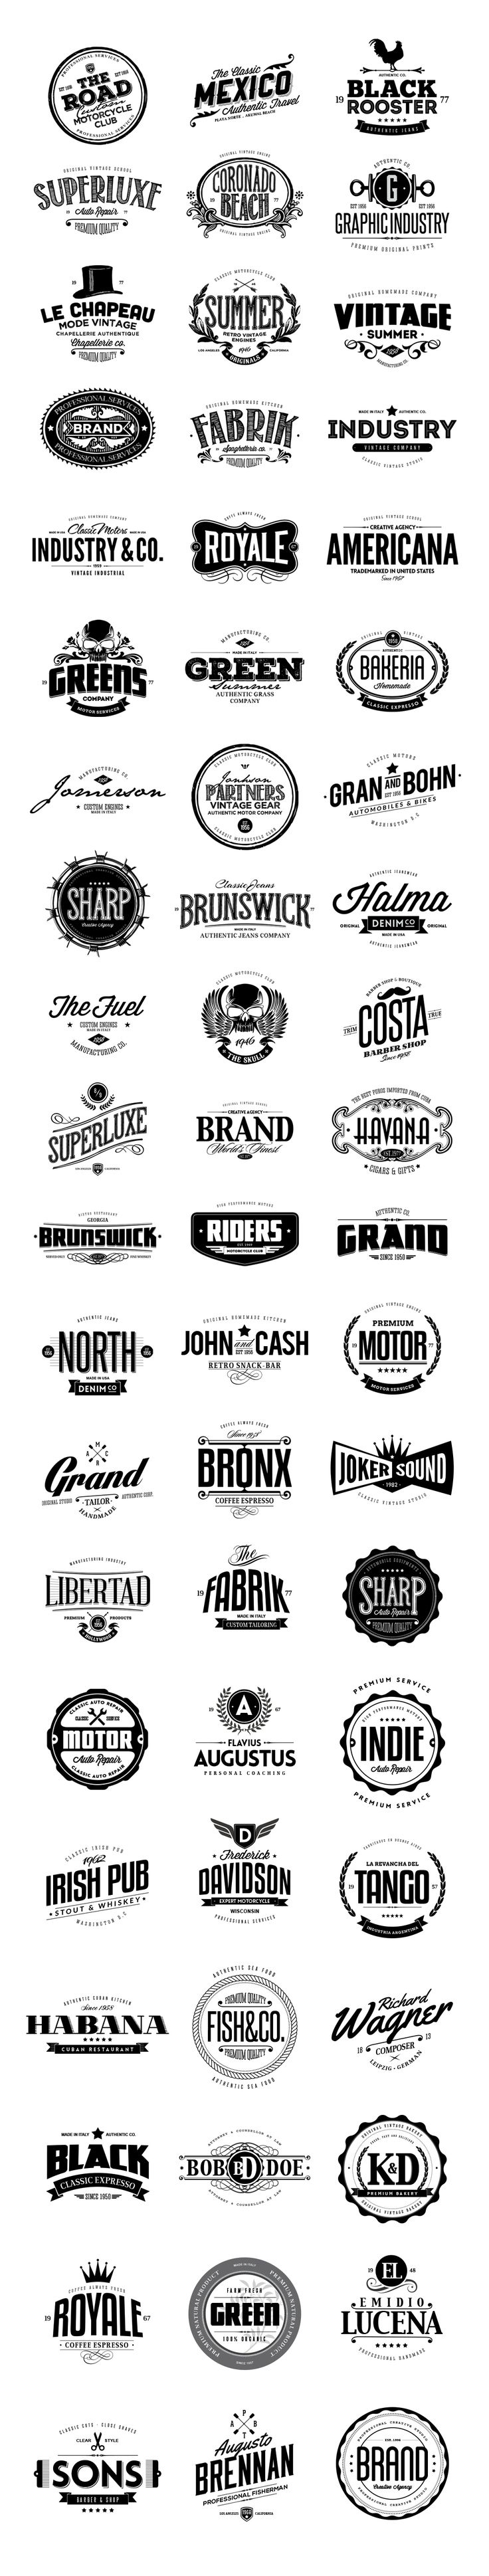 57 Best Logo Images On Pinterest Graph Design Graphics And Brand